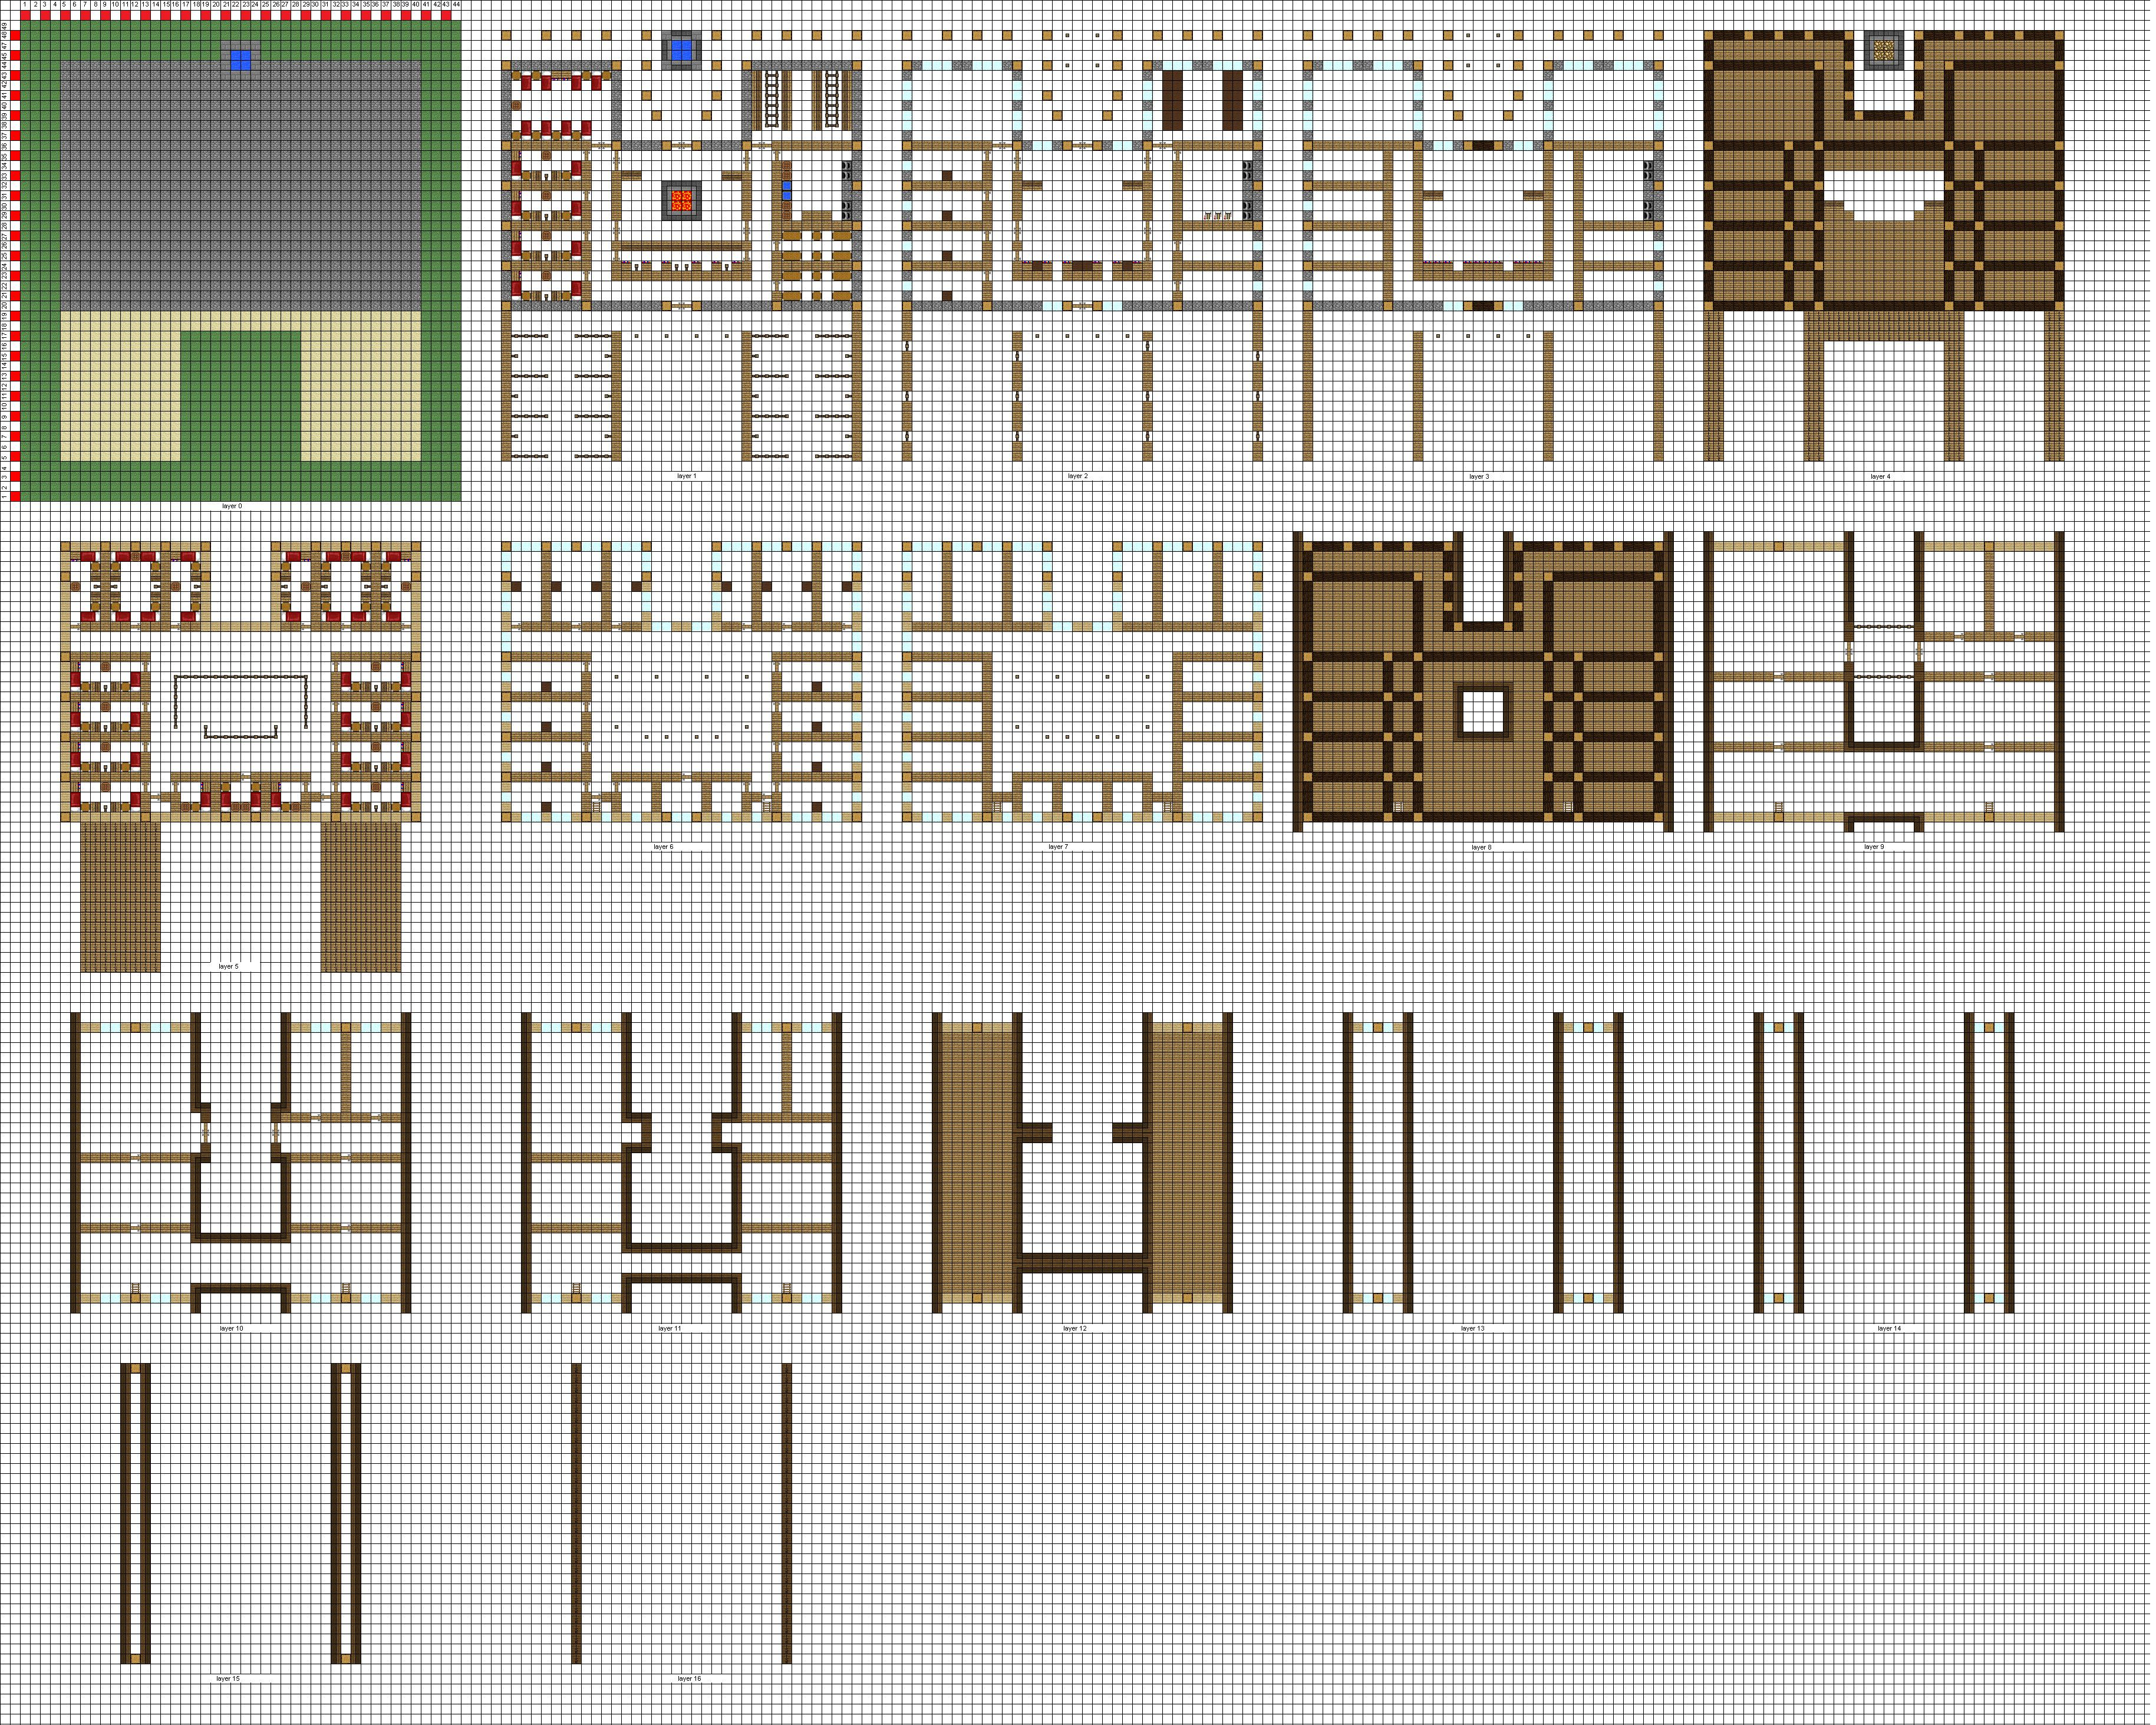 Minecraft large inn floorplans wip by coltcoyote minecraft minecraft large inn floorplans wip by coltcoyote malvernweather Images